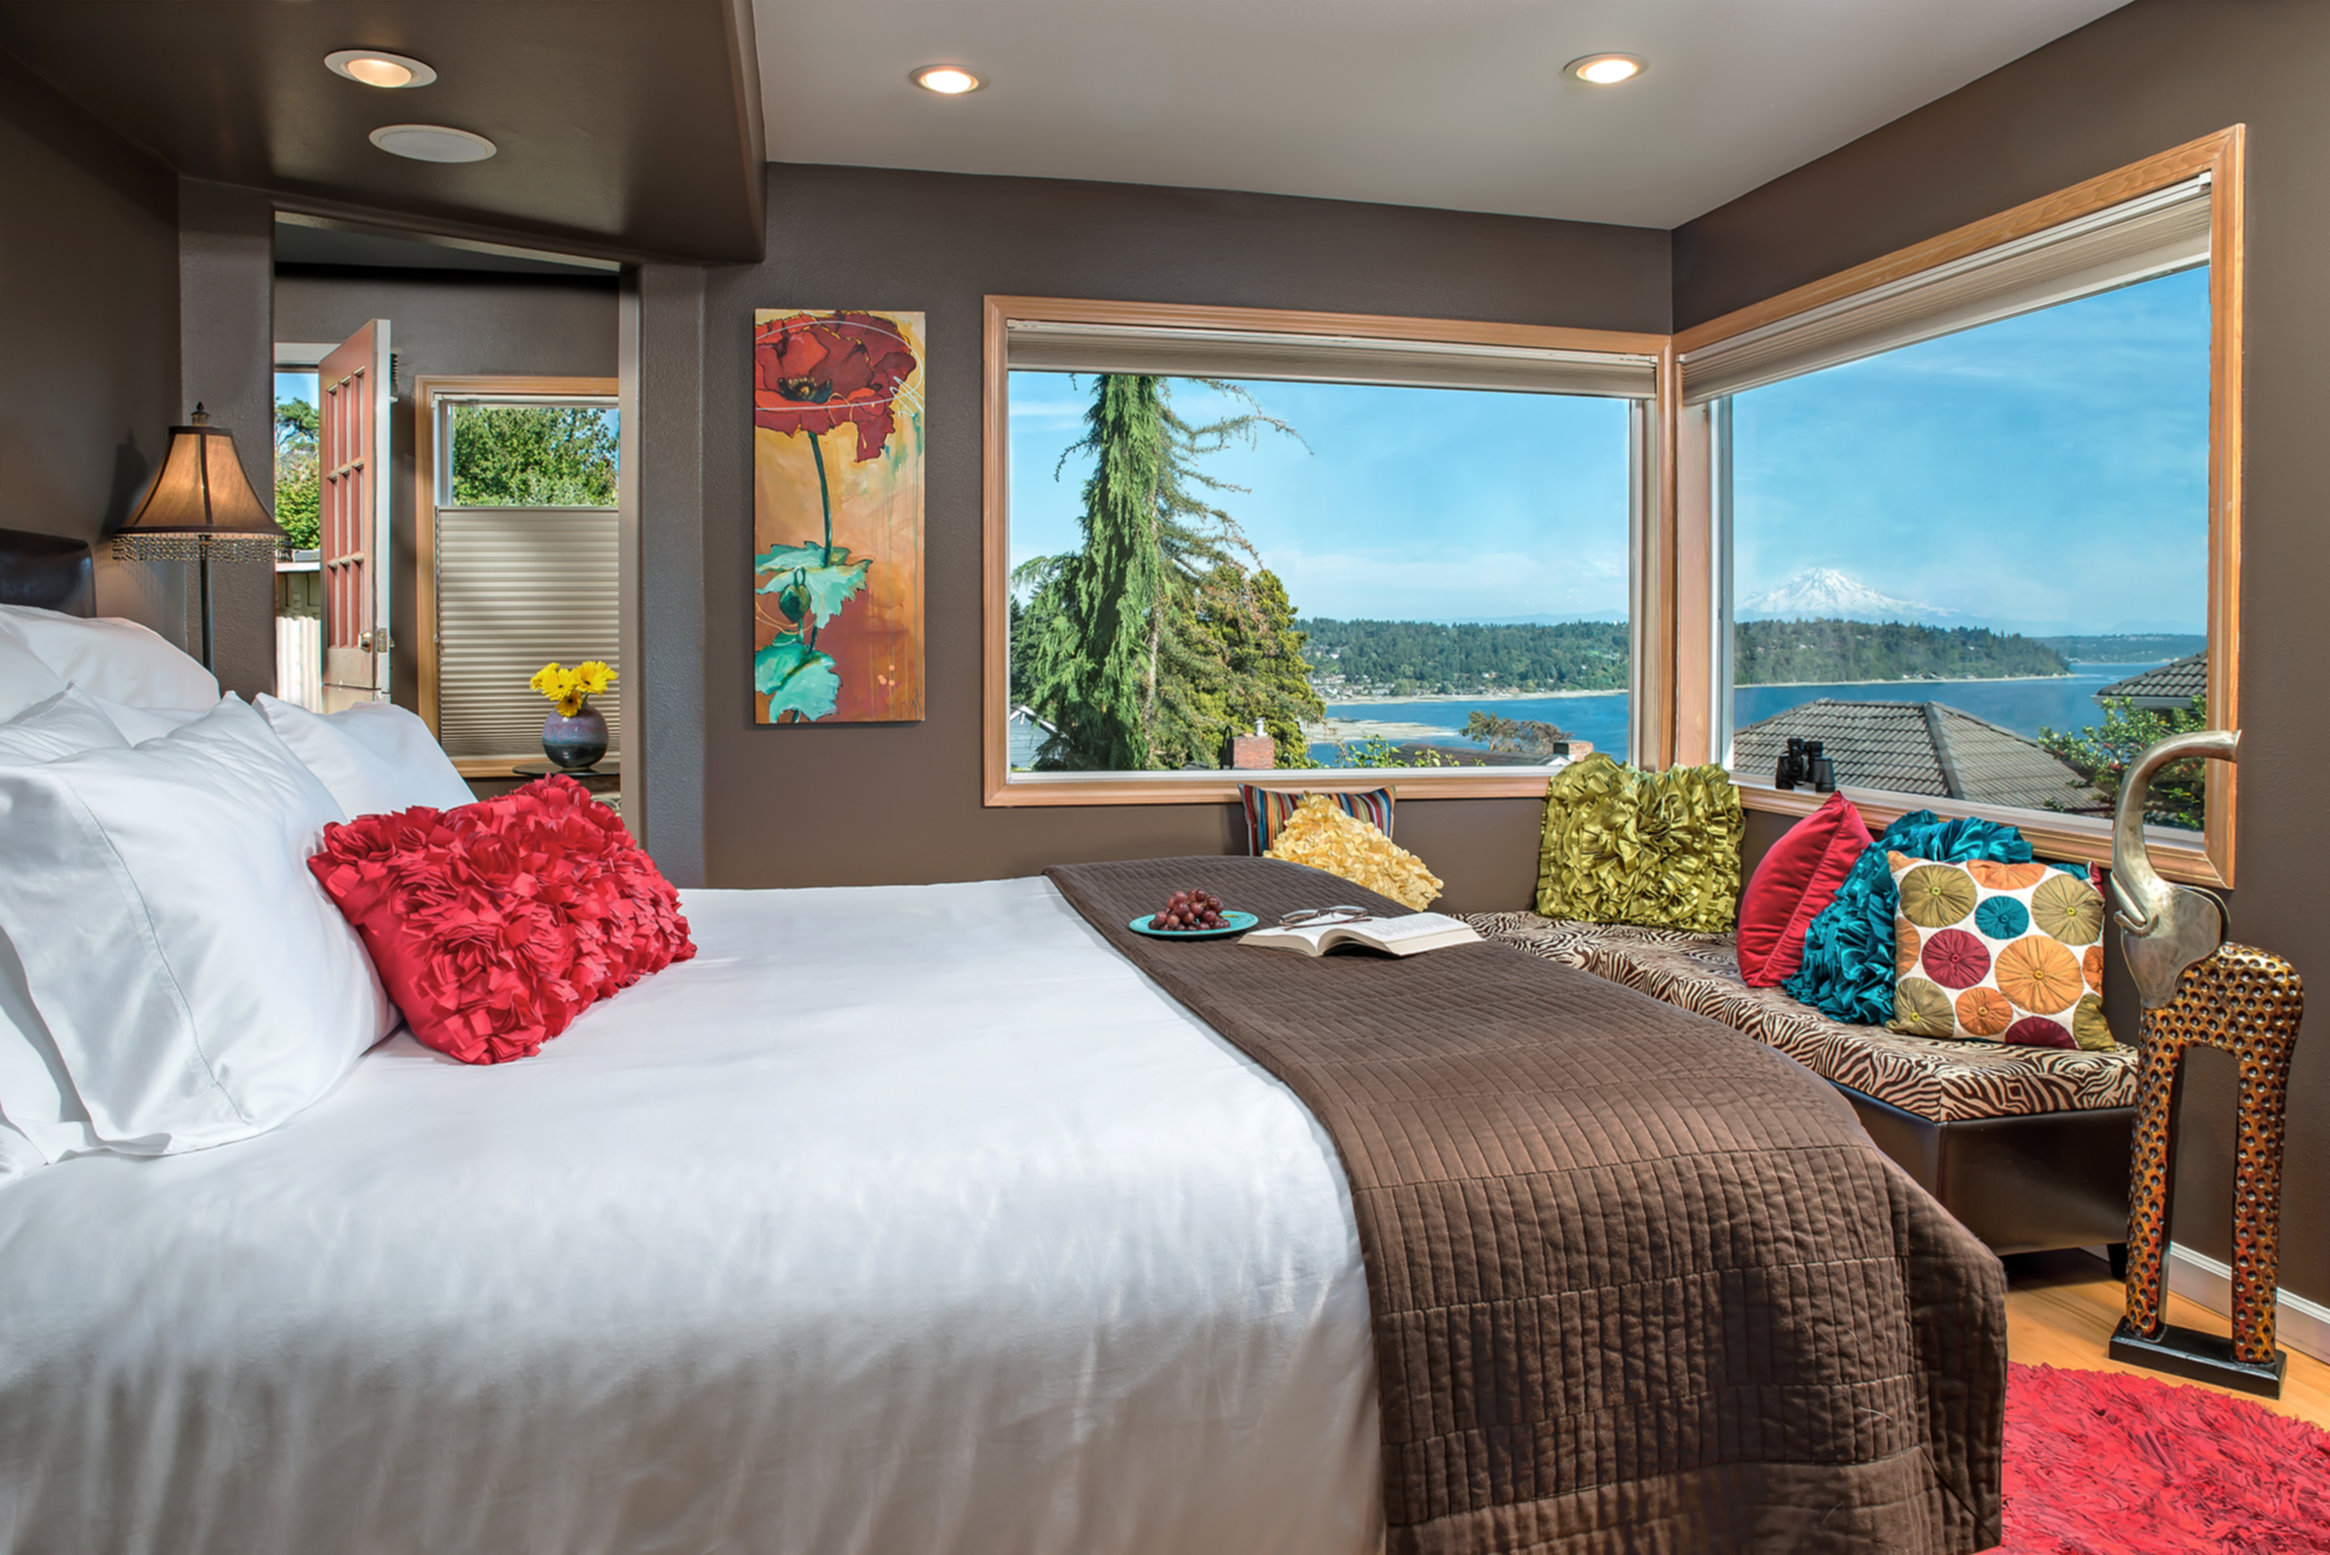 A bedroom with a bed and a window at Three Tree Point Bed & Breakfast.